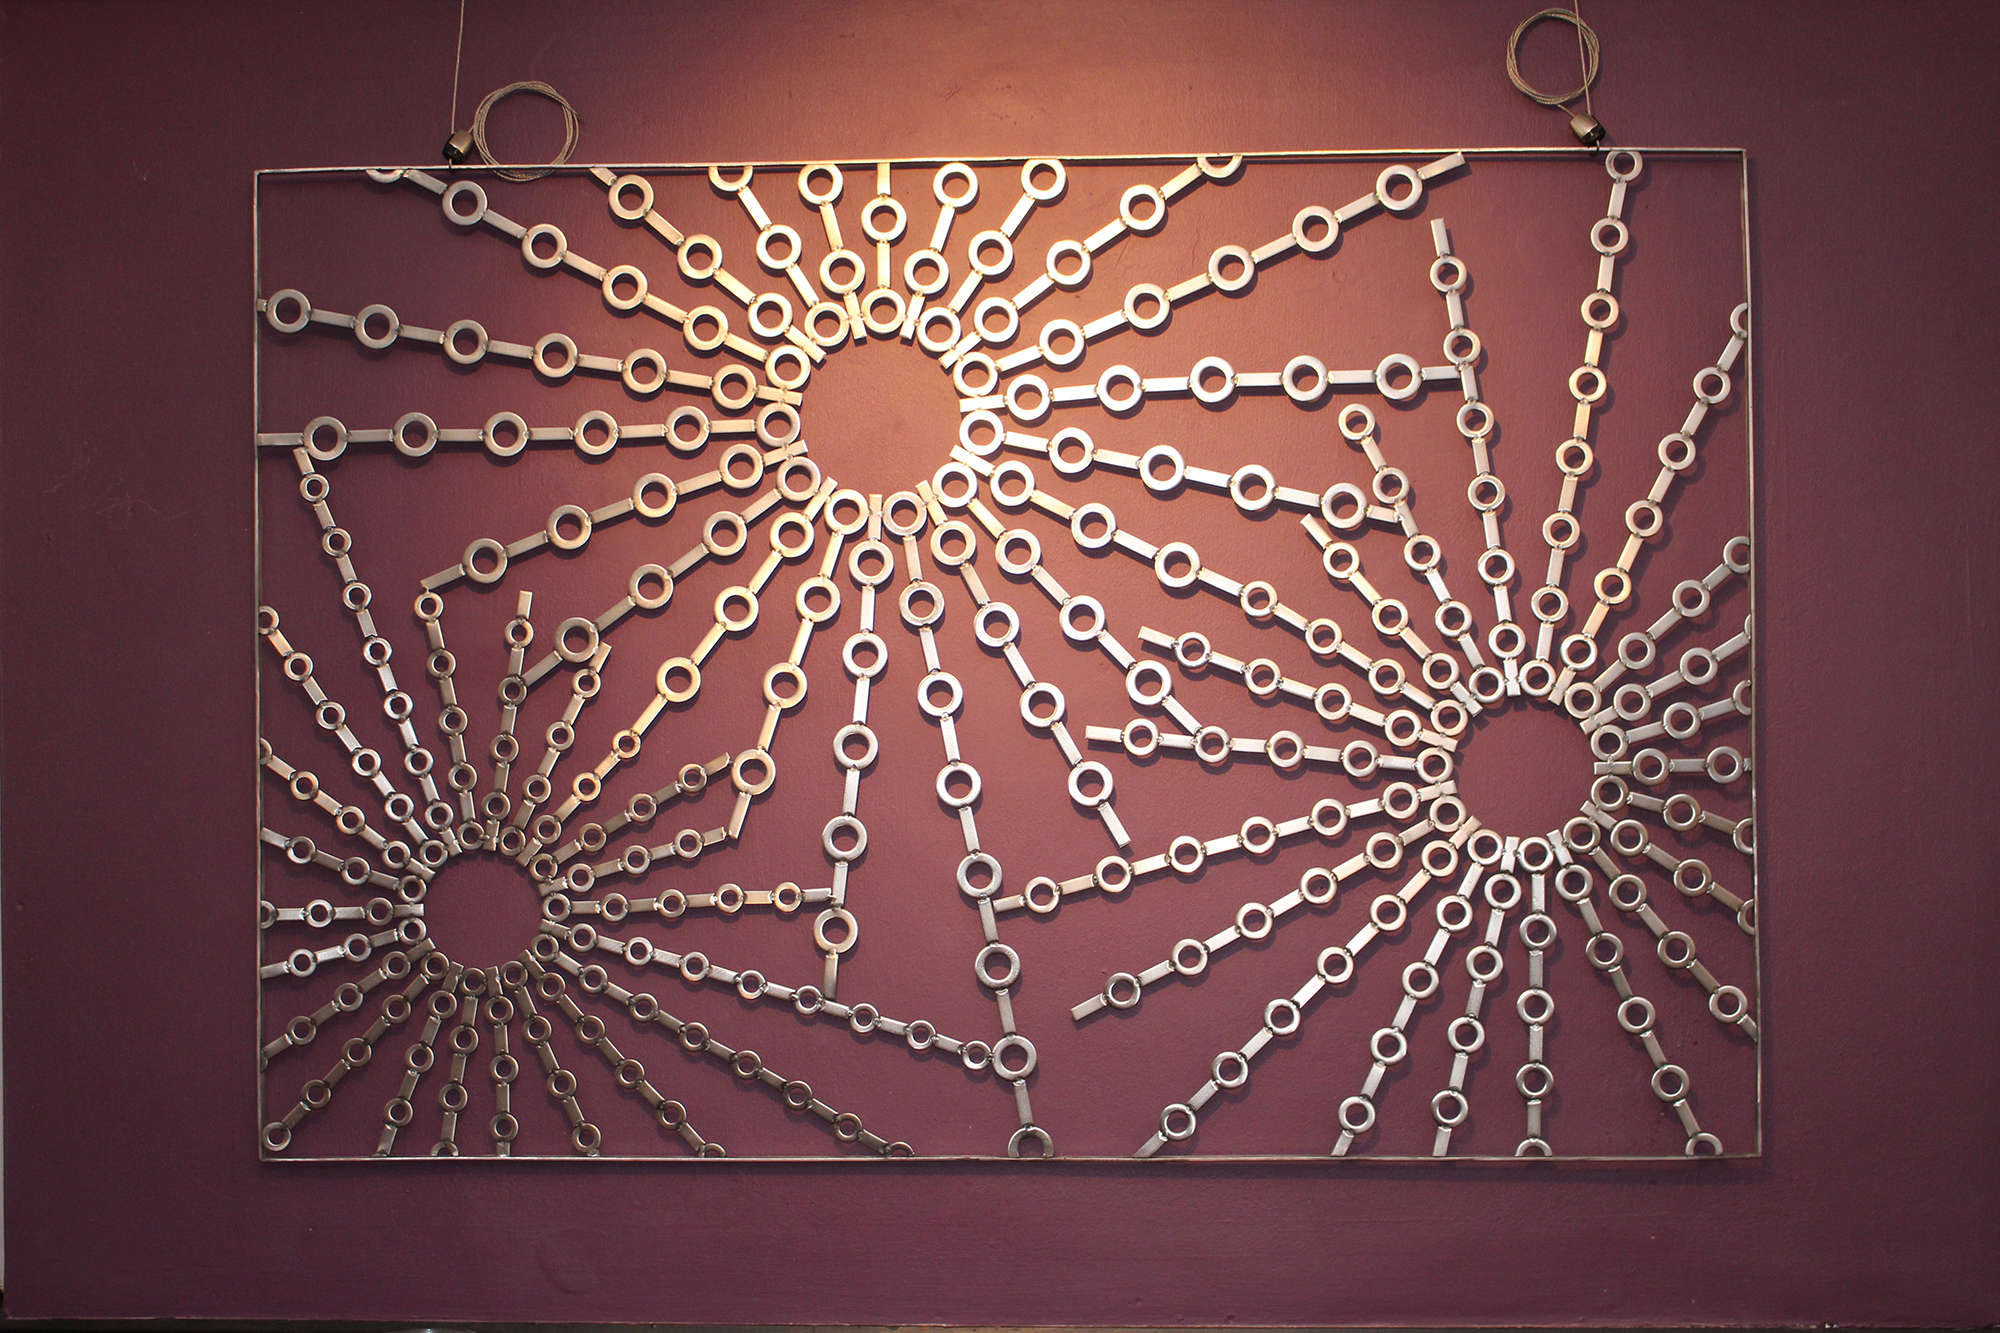 Stainless steel metal wall art abstract sculpture - Multiples Suns 2016